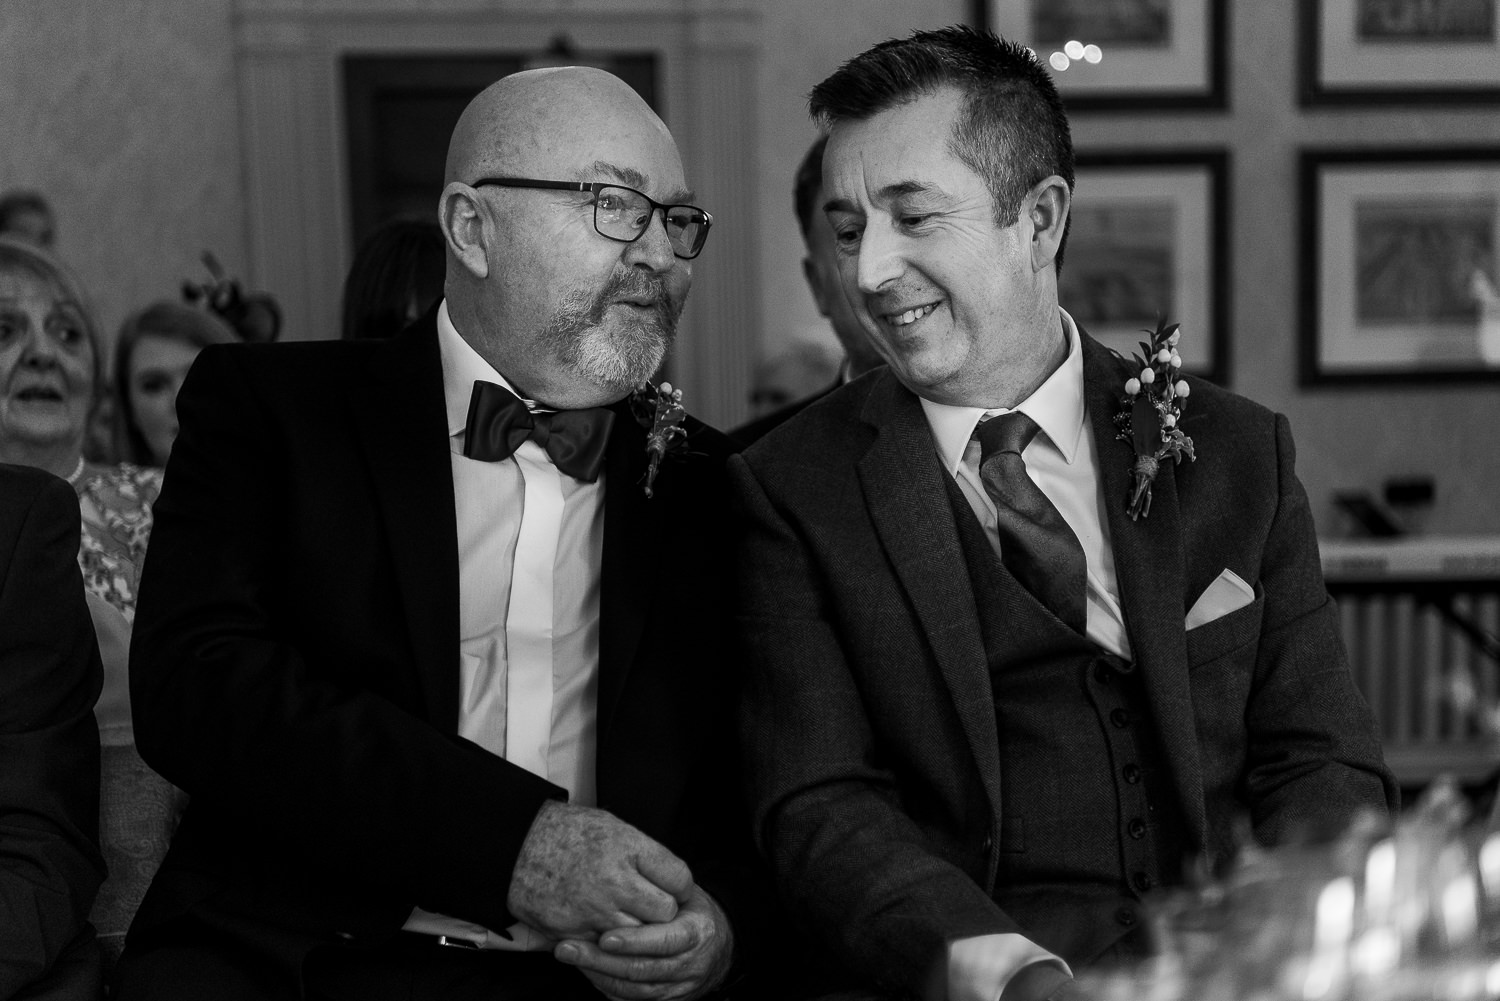 Groom and his best man waiting and laughing